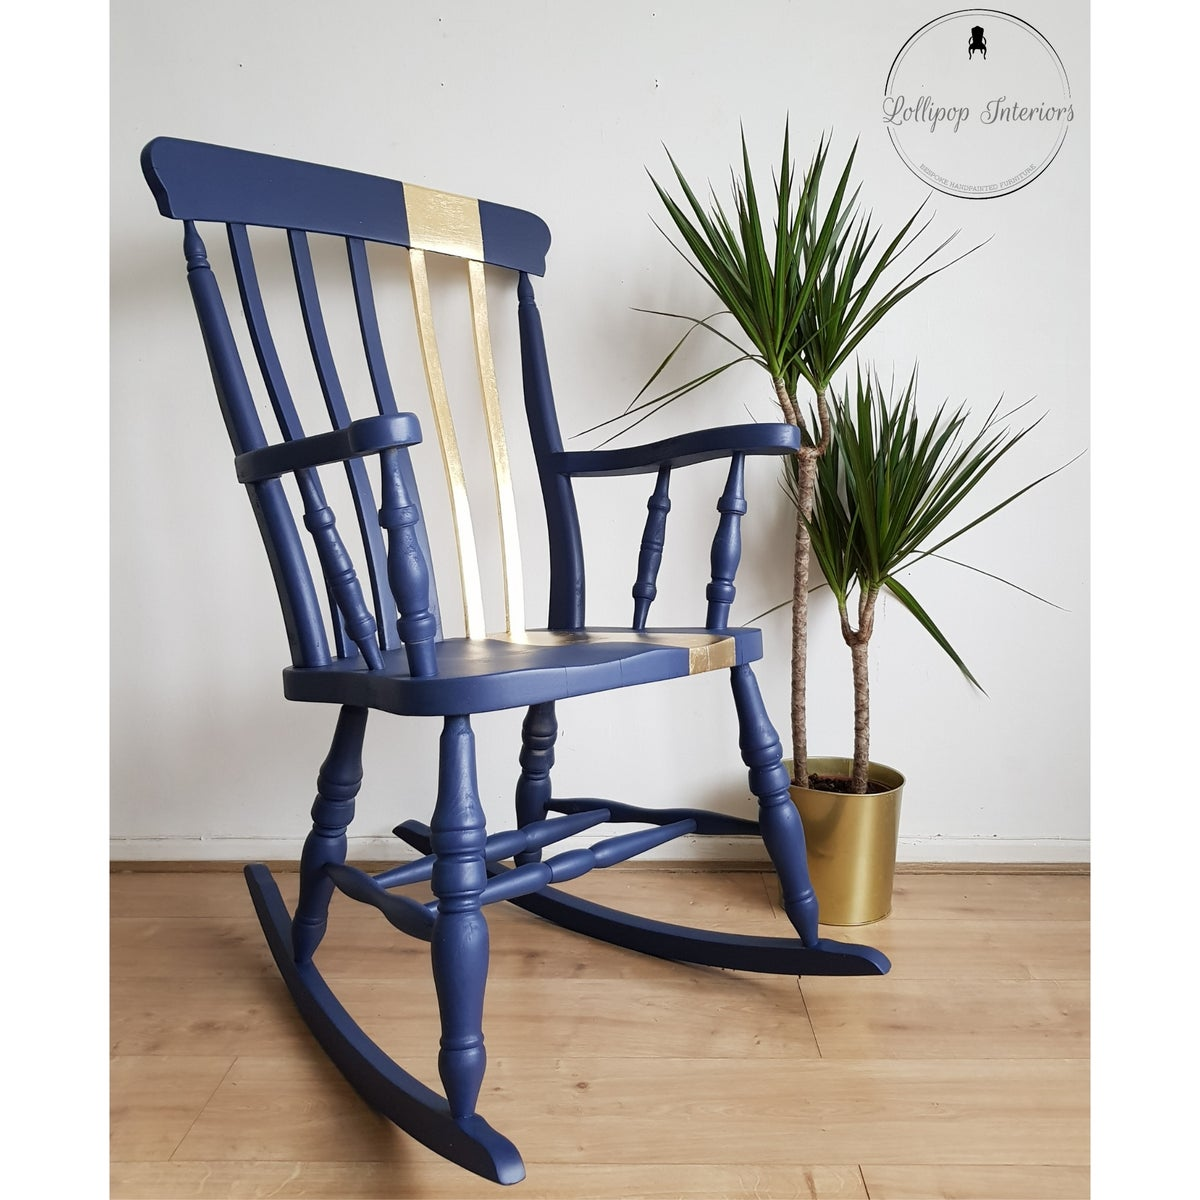 Image of Solid pine rocking chair